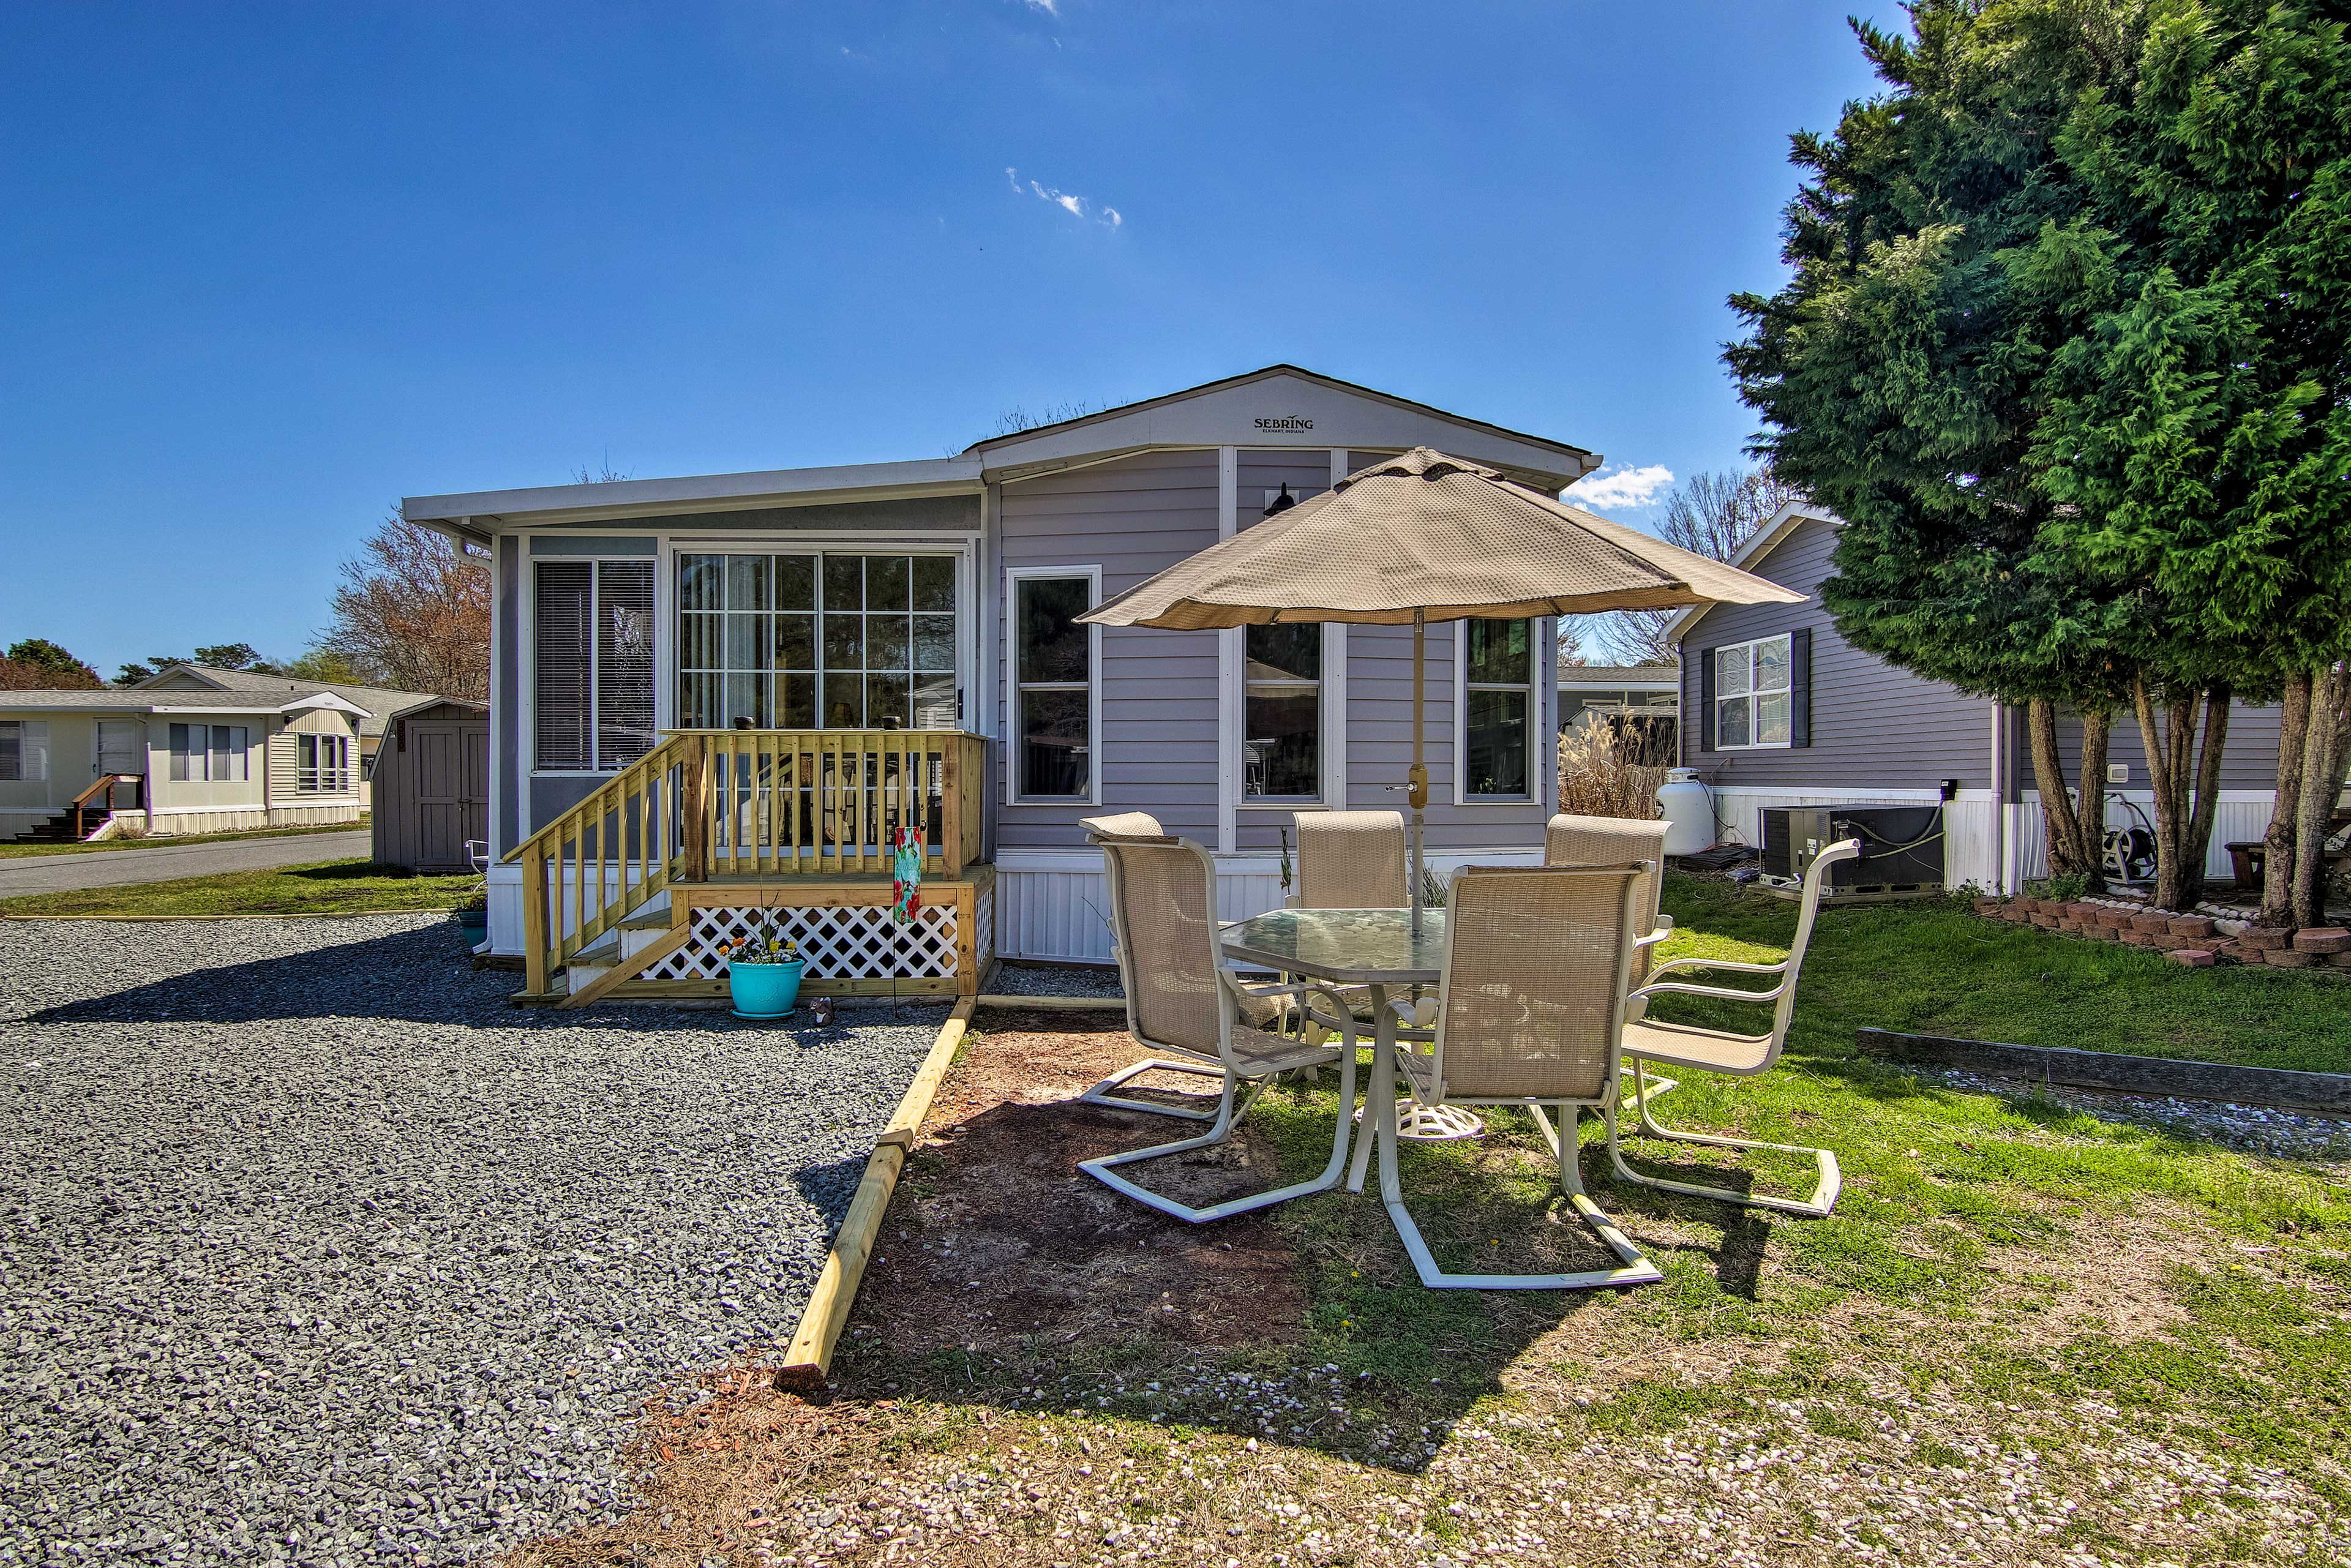 The 2-bedroom, 1-bath home belongs to the White Horse Park community.